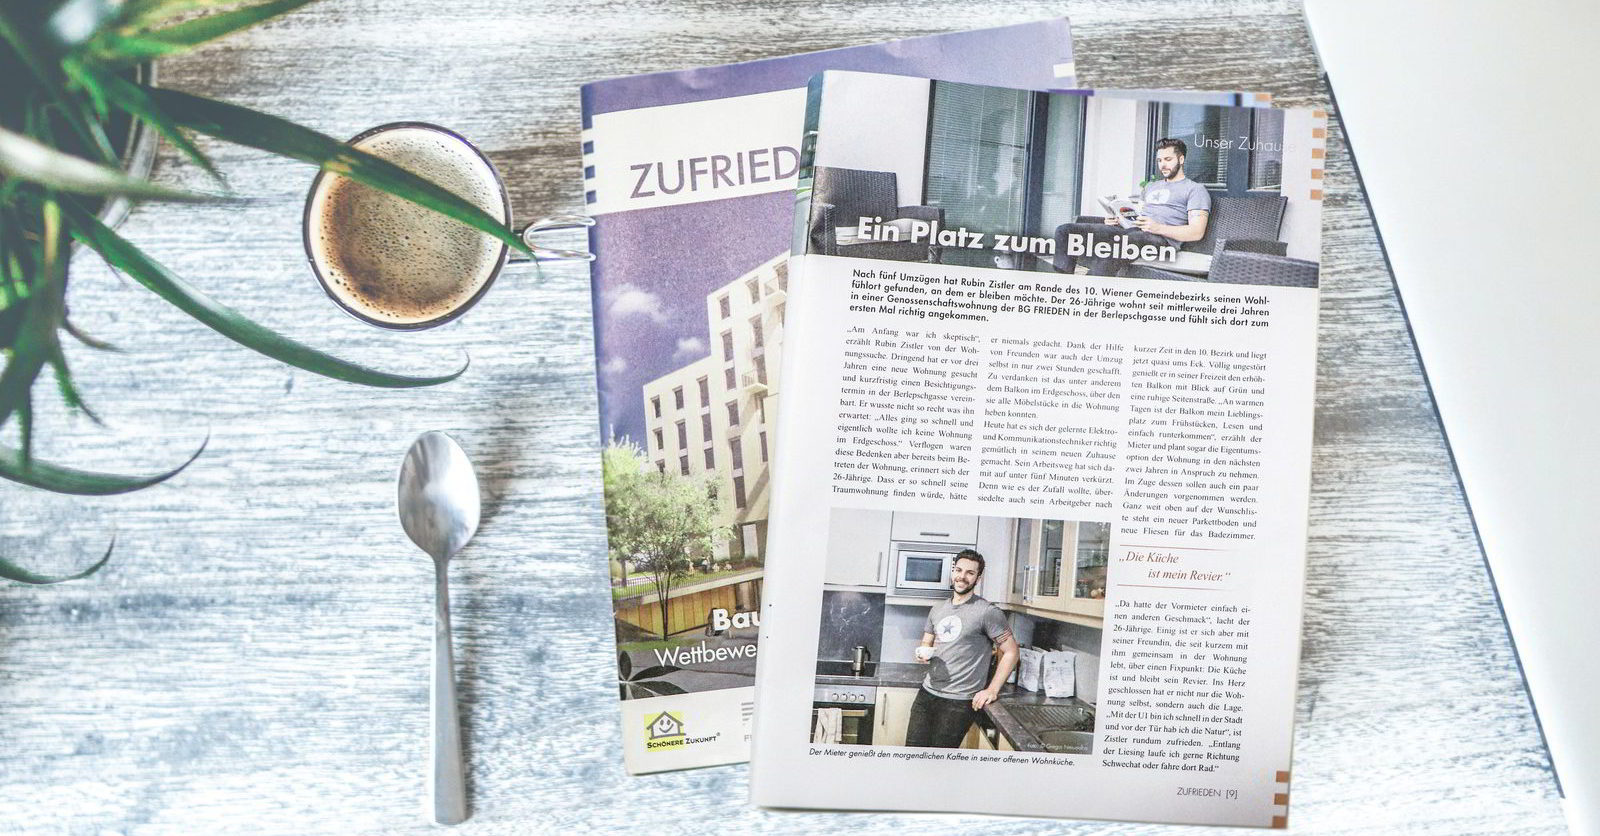 """ZUFRIEDEN"": Tenants Magazine Of The Building Cooperative FRIEDEN"